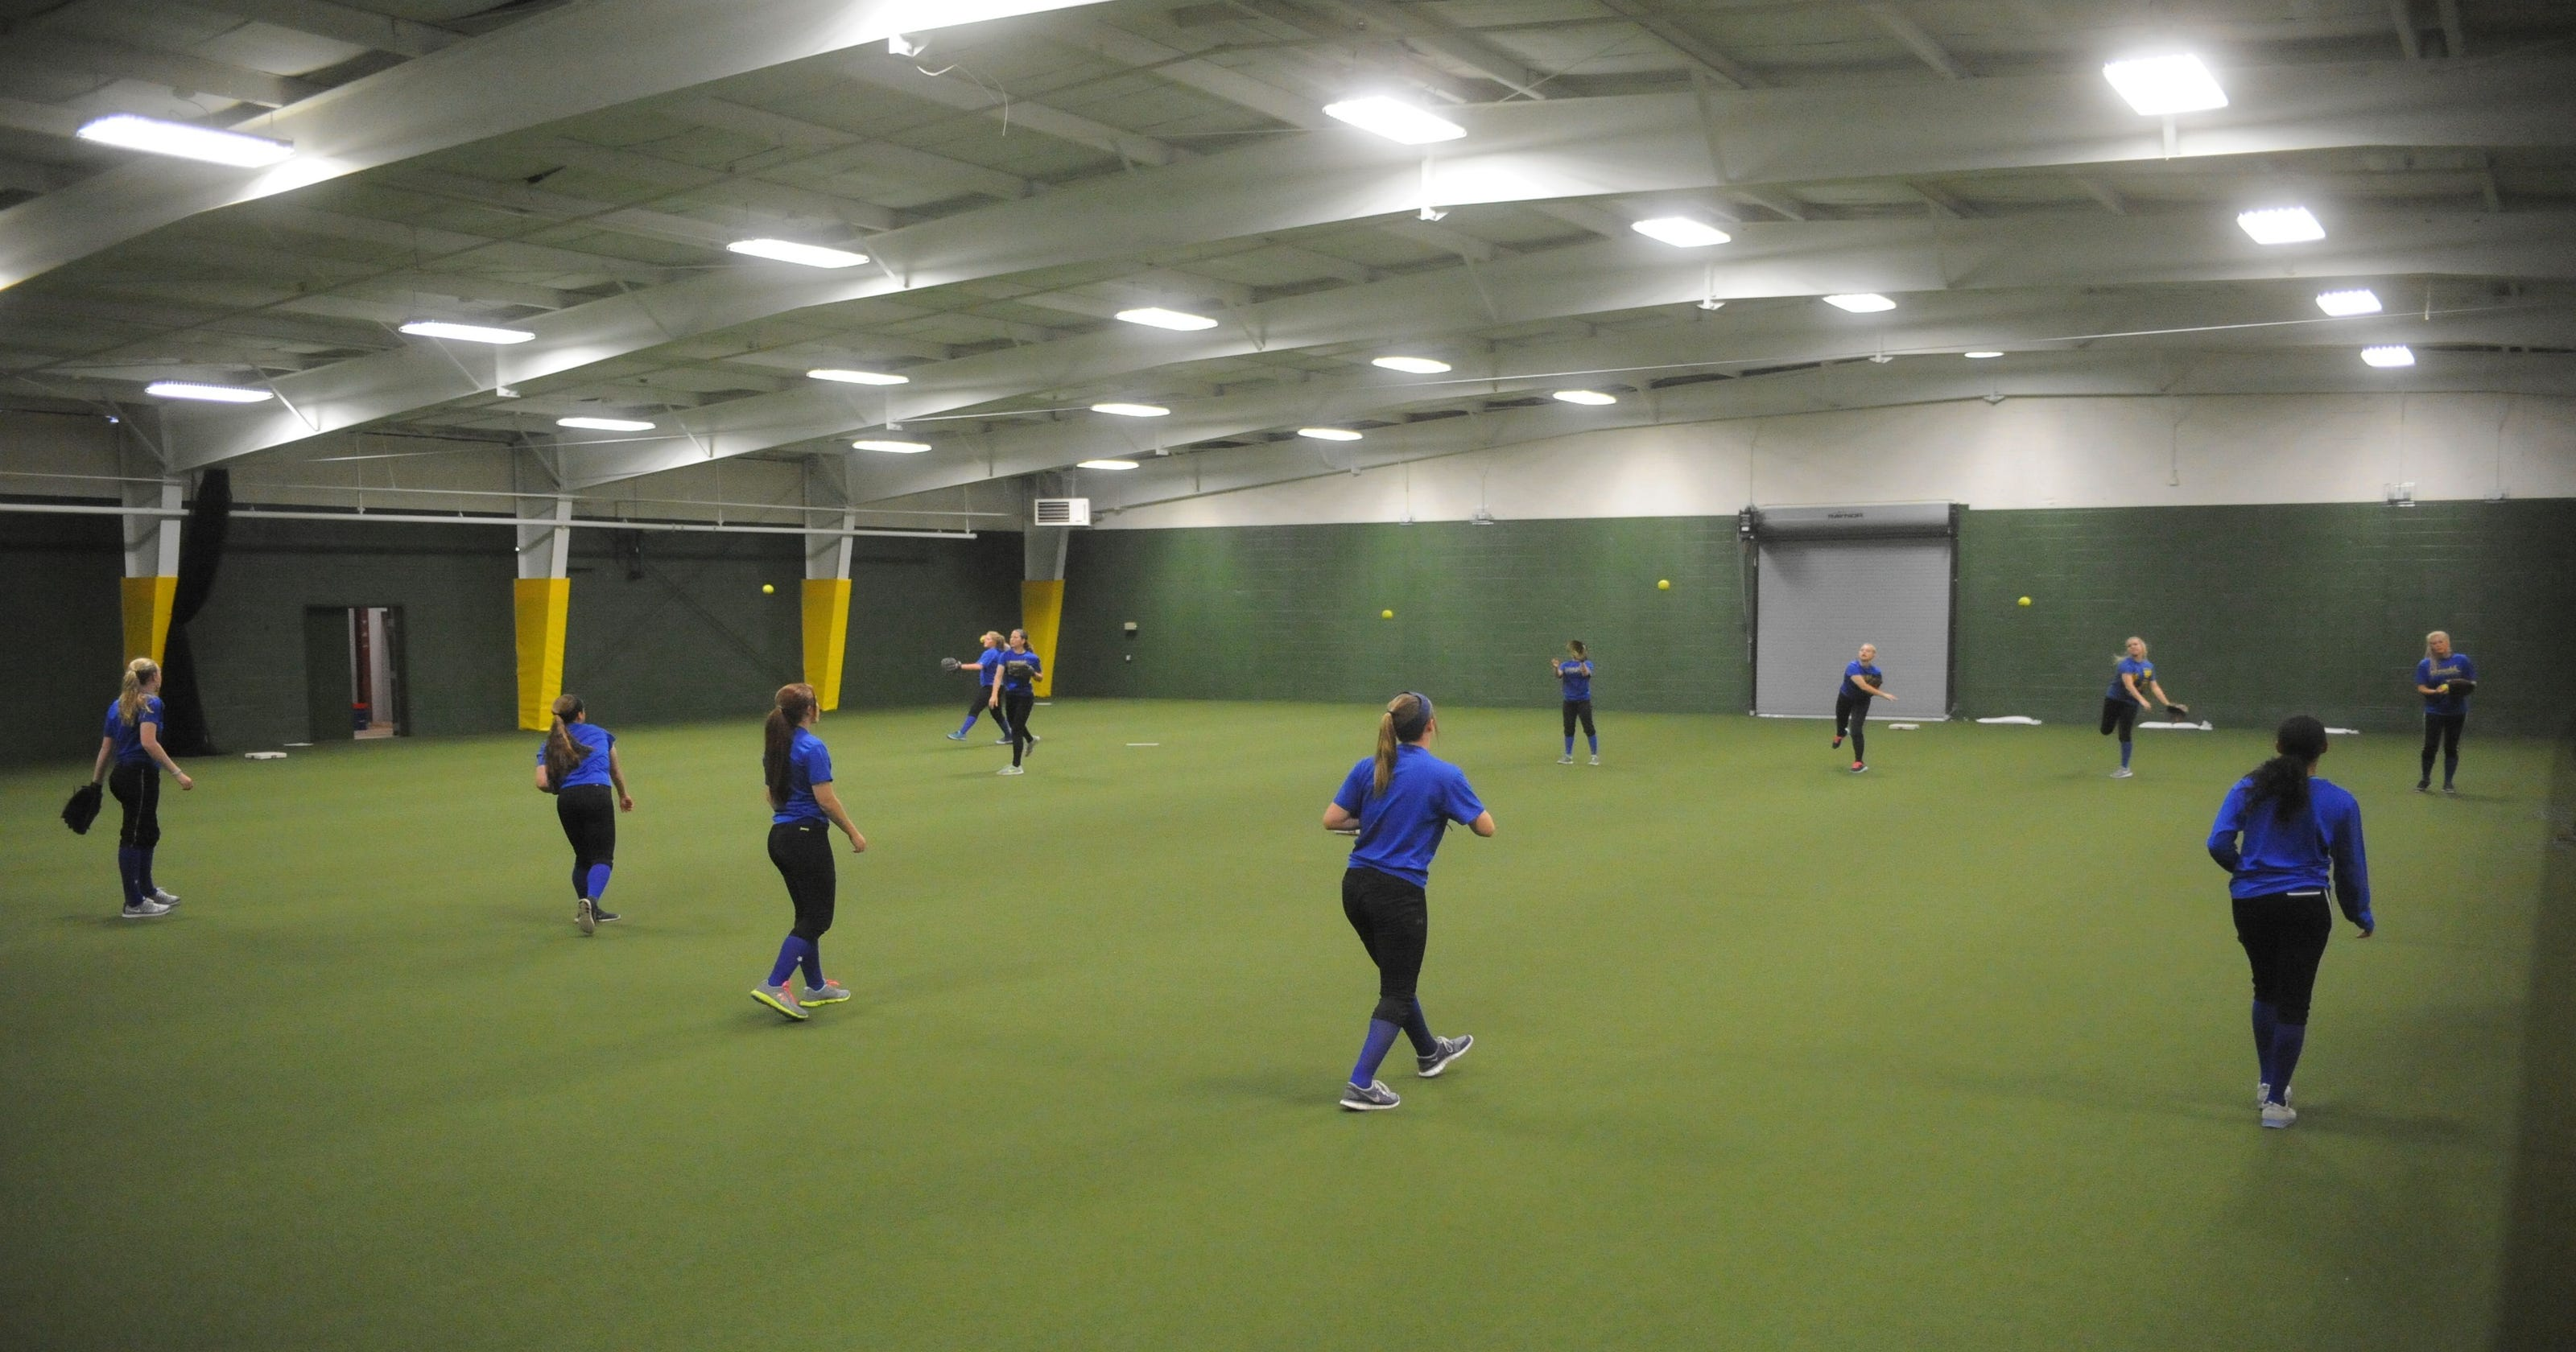 Indoor Facility Is New Launching Pad For The Bombers